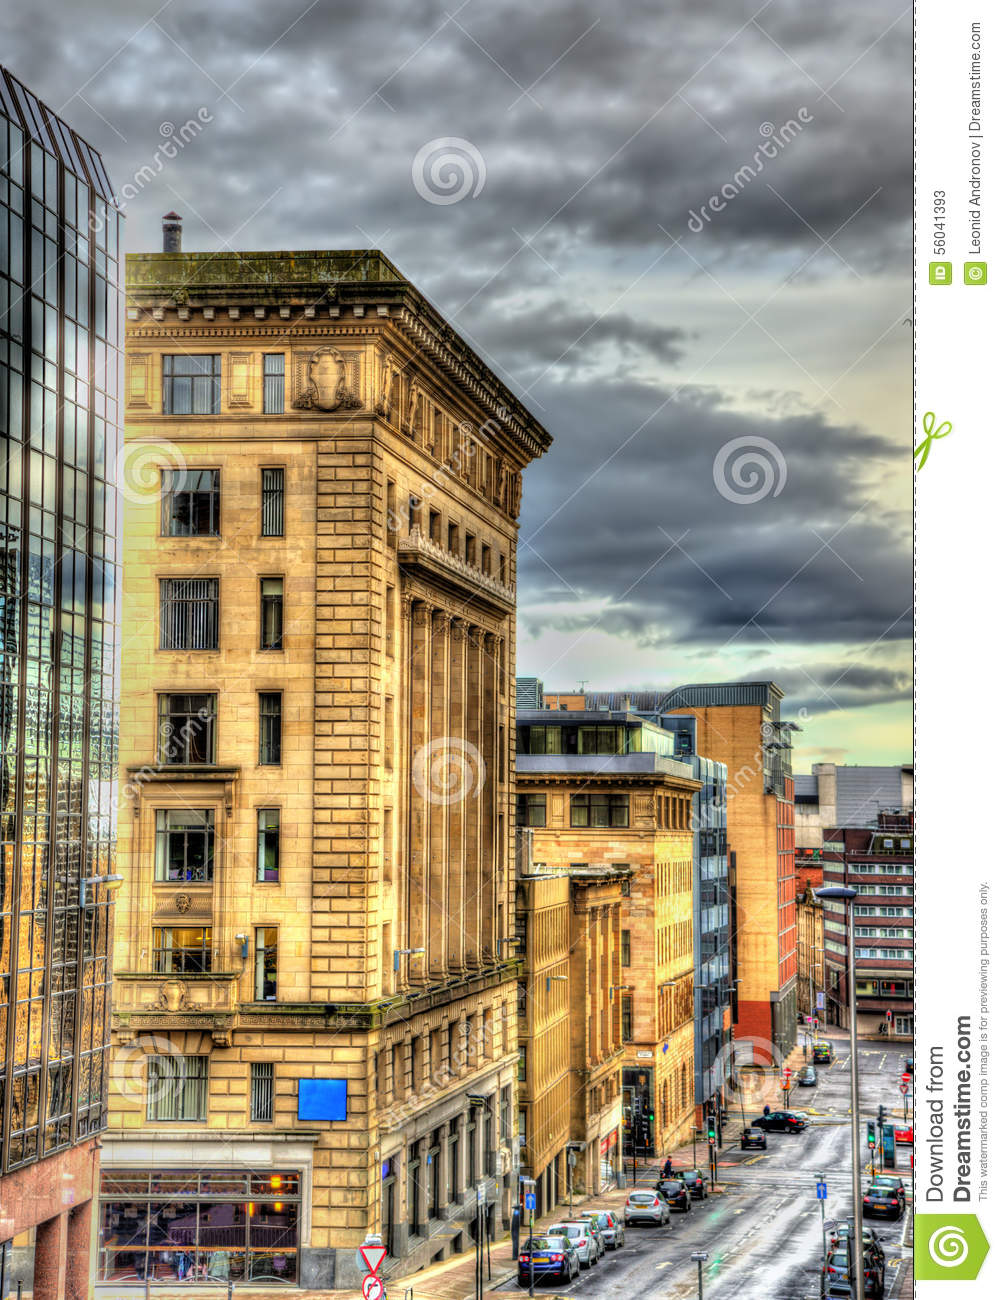 historic buildings in the centre of glasgow stock image image 56041393. Black Bedroom Furniture Sets. Home Design Ideas